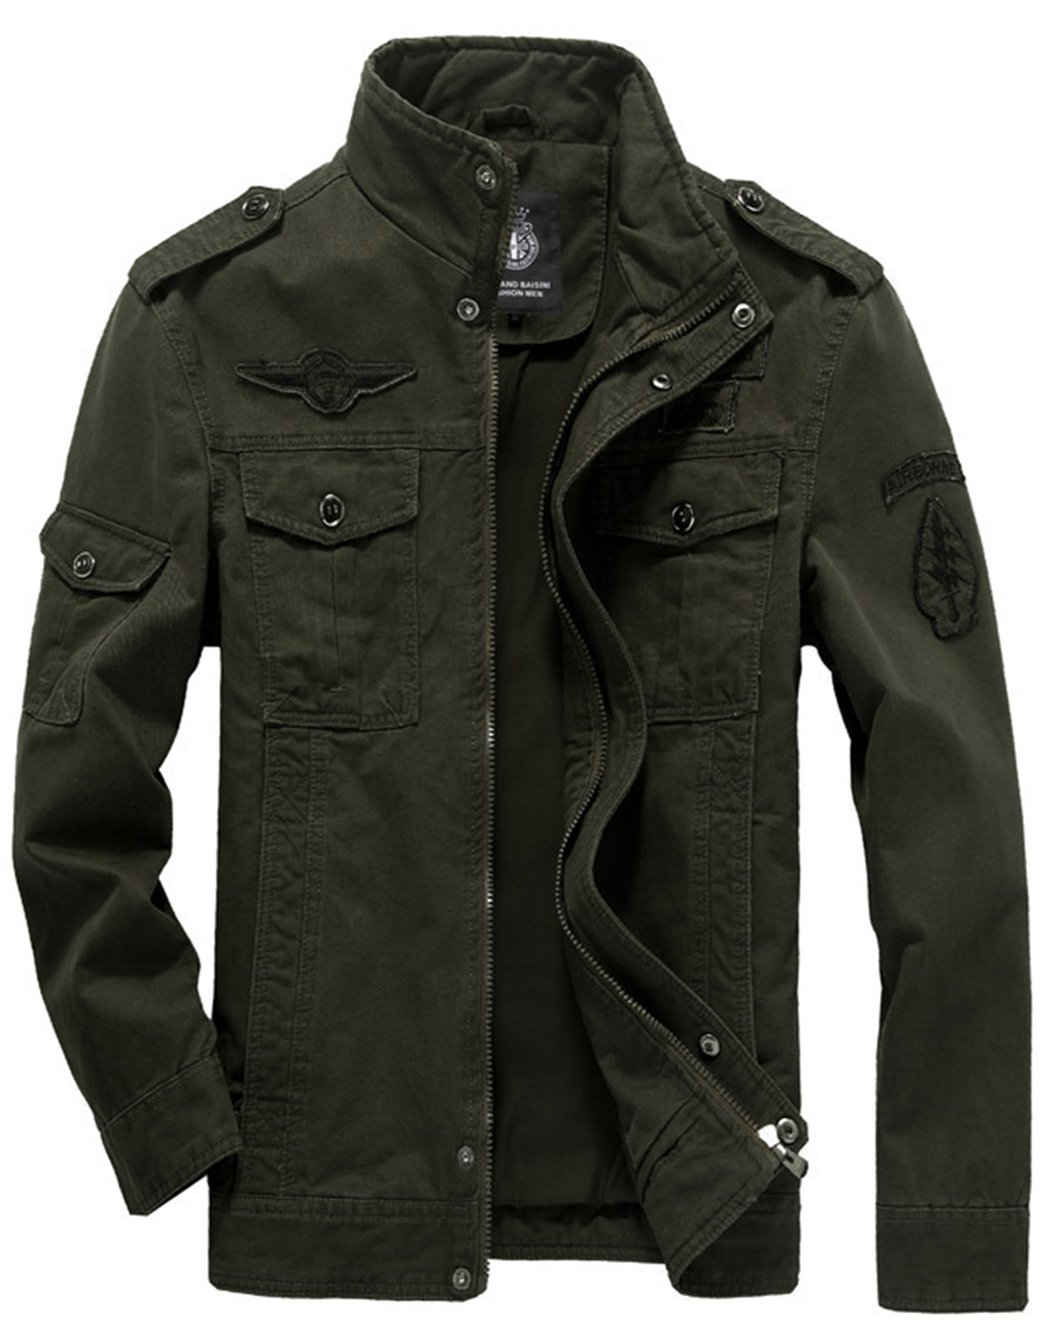 Sawadikaa Men's Cotton Lightweight Military Casual Jacket Windbreaker Wind Trench Coat Bomber Jacket Army Green Medium